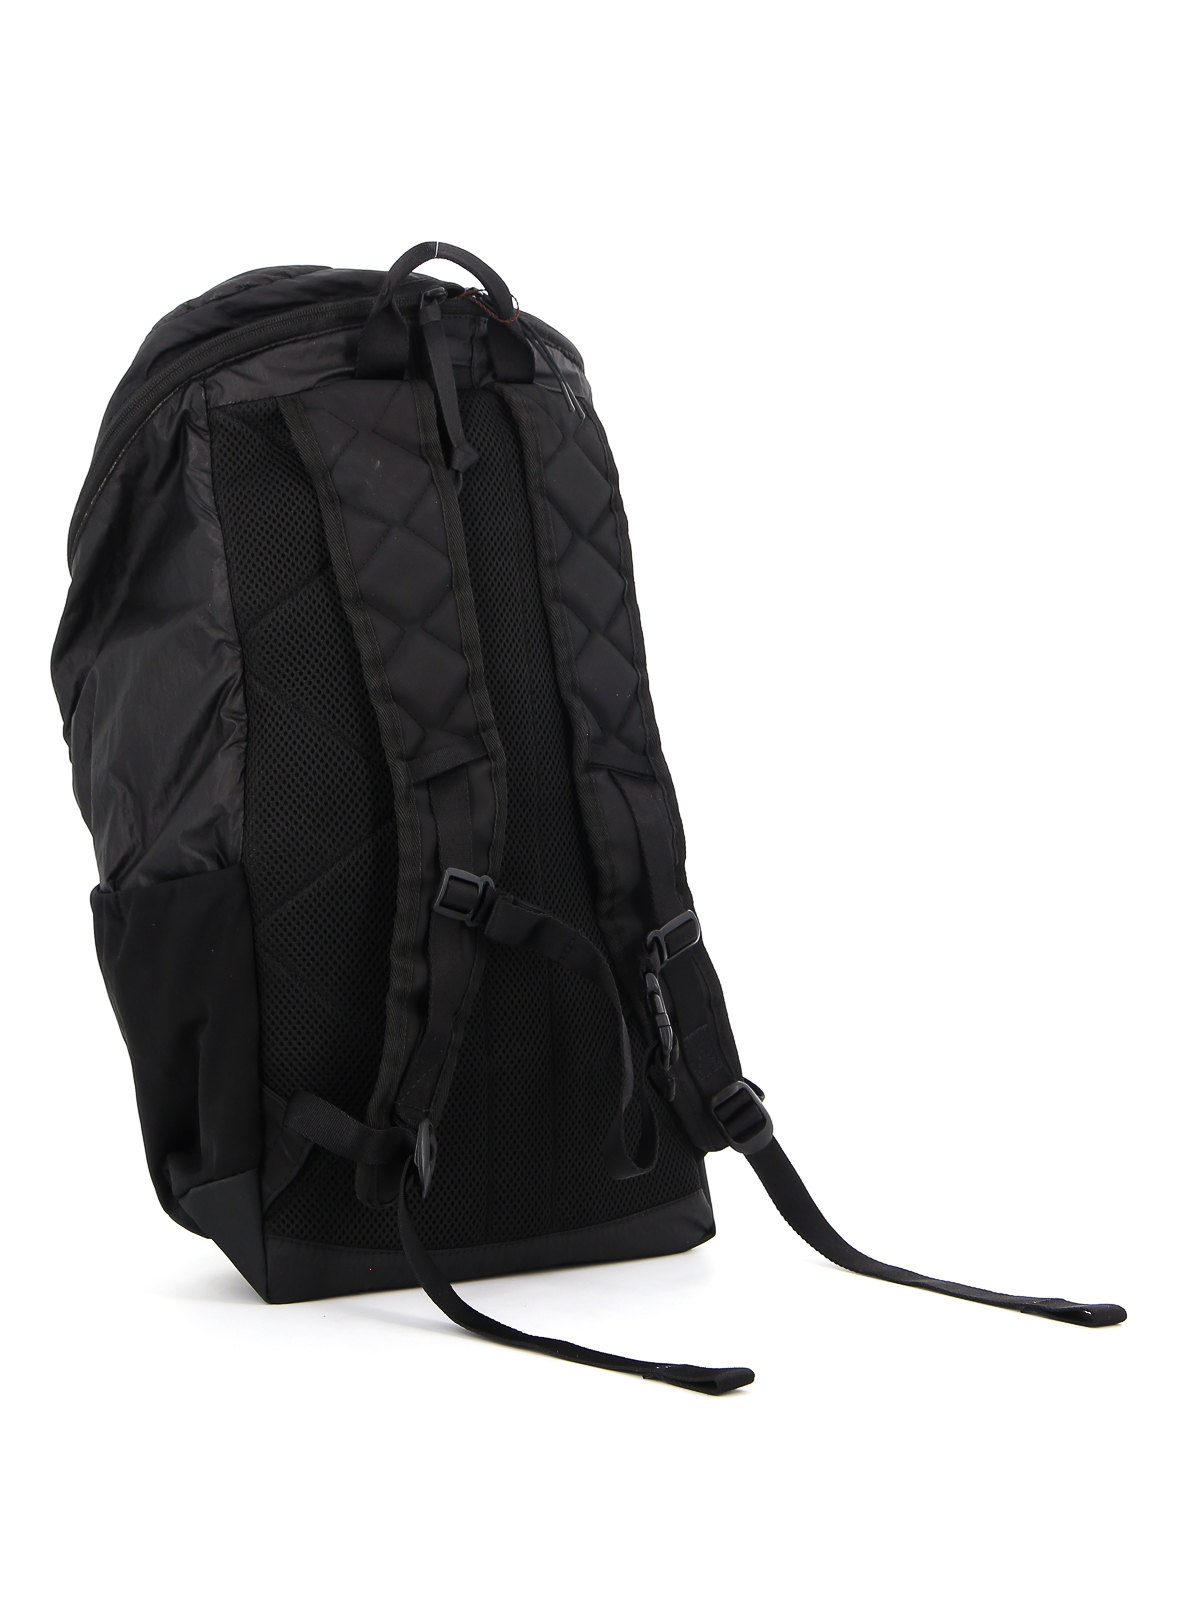 Immagine di C.P. Company | Back Pack